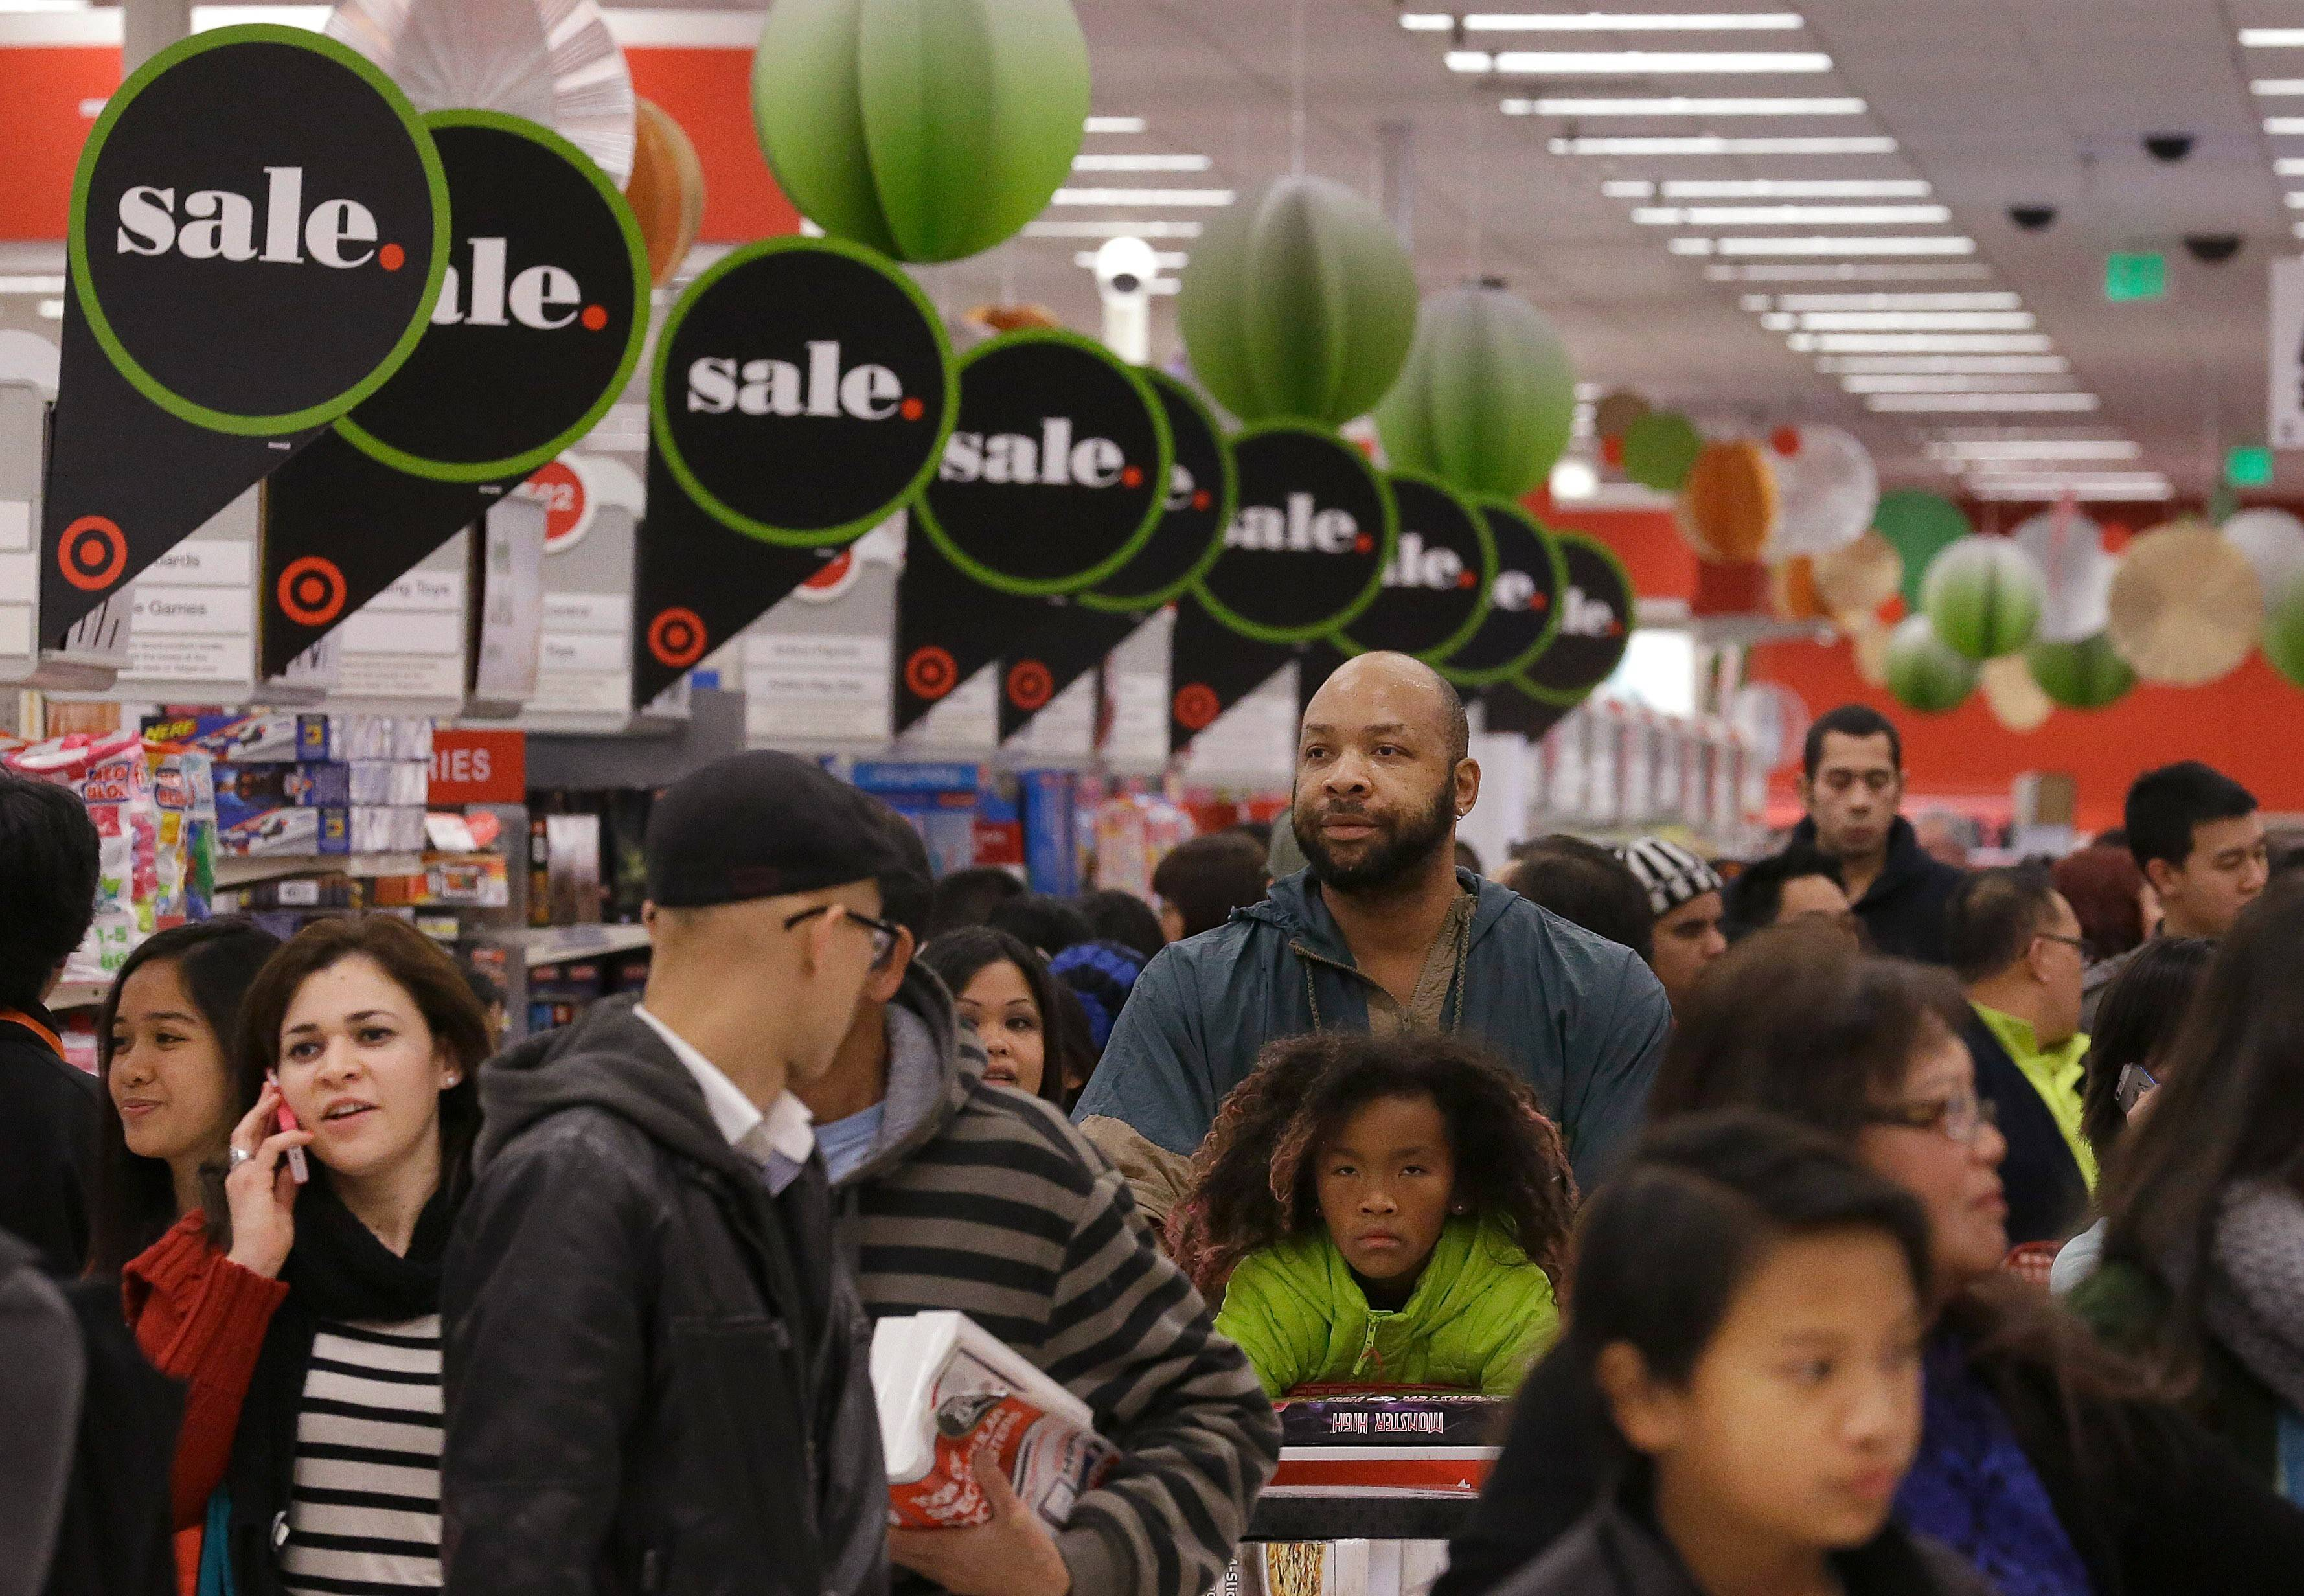 Experts say Thanksgiving weekend lives up to the hype of serving up the best bargains of the year from TVs to clothing. Shoppers, however, need to do their homework before joining the crowds at the mall or heading online for the official kickoff that's increasingly creeping into the turkey feast.